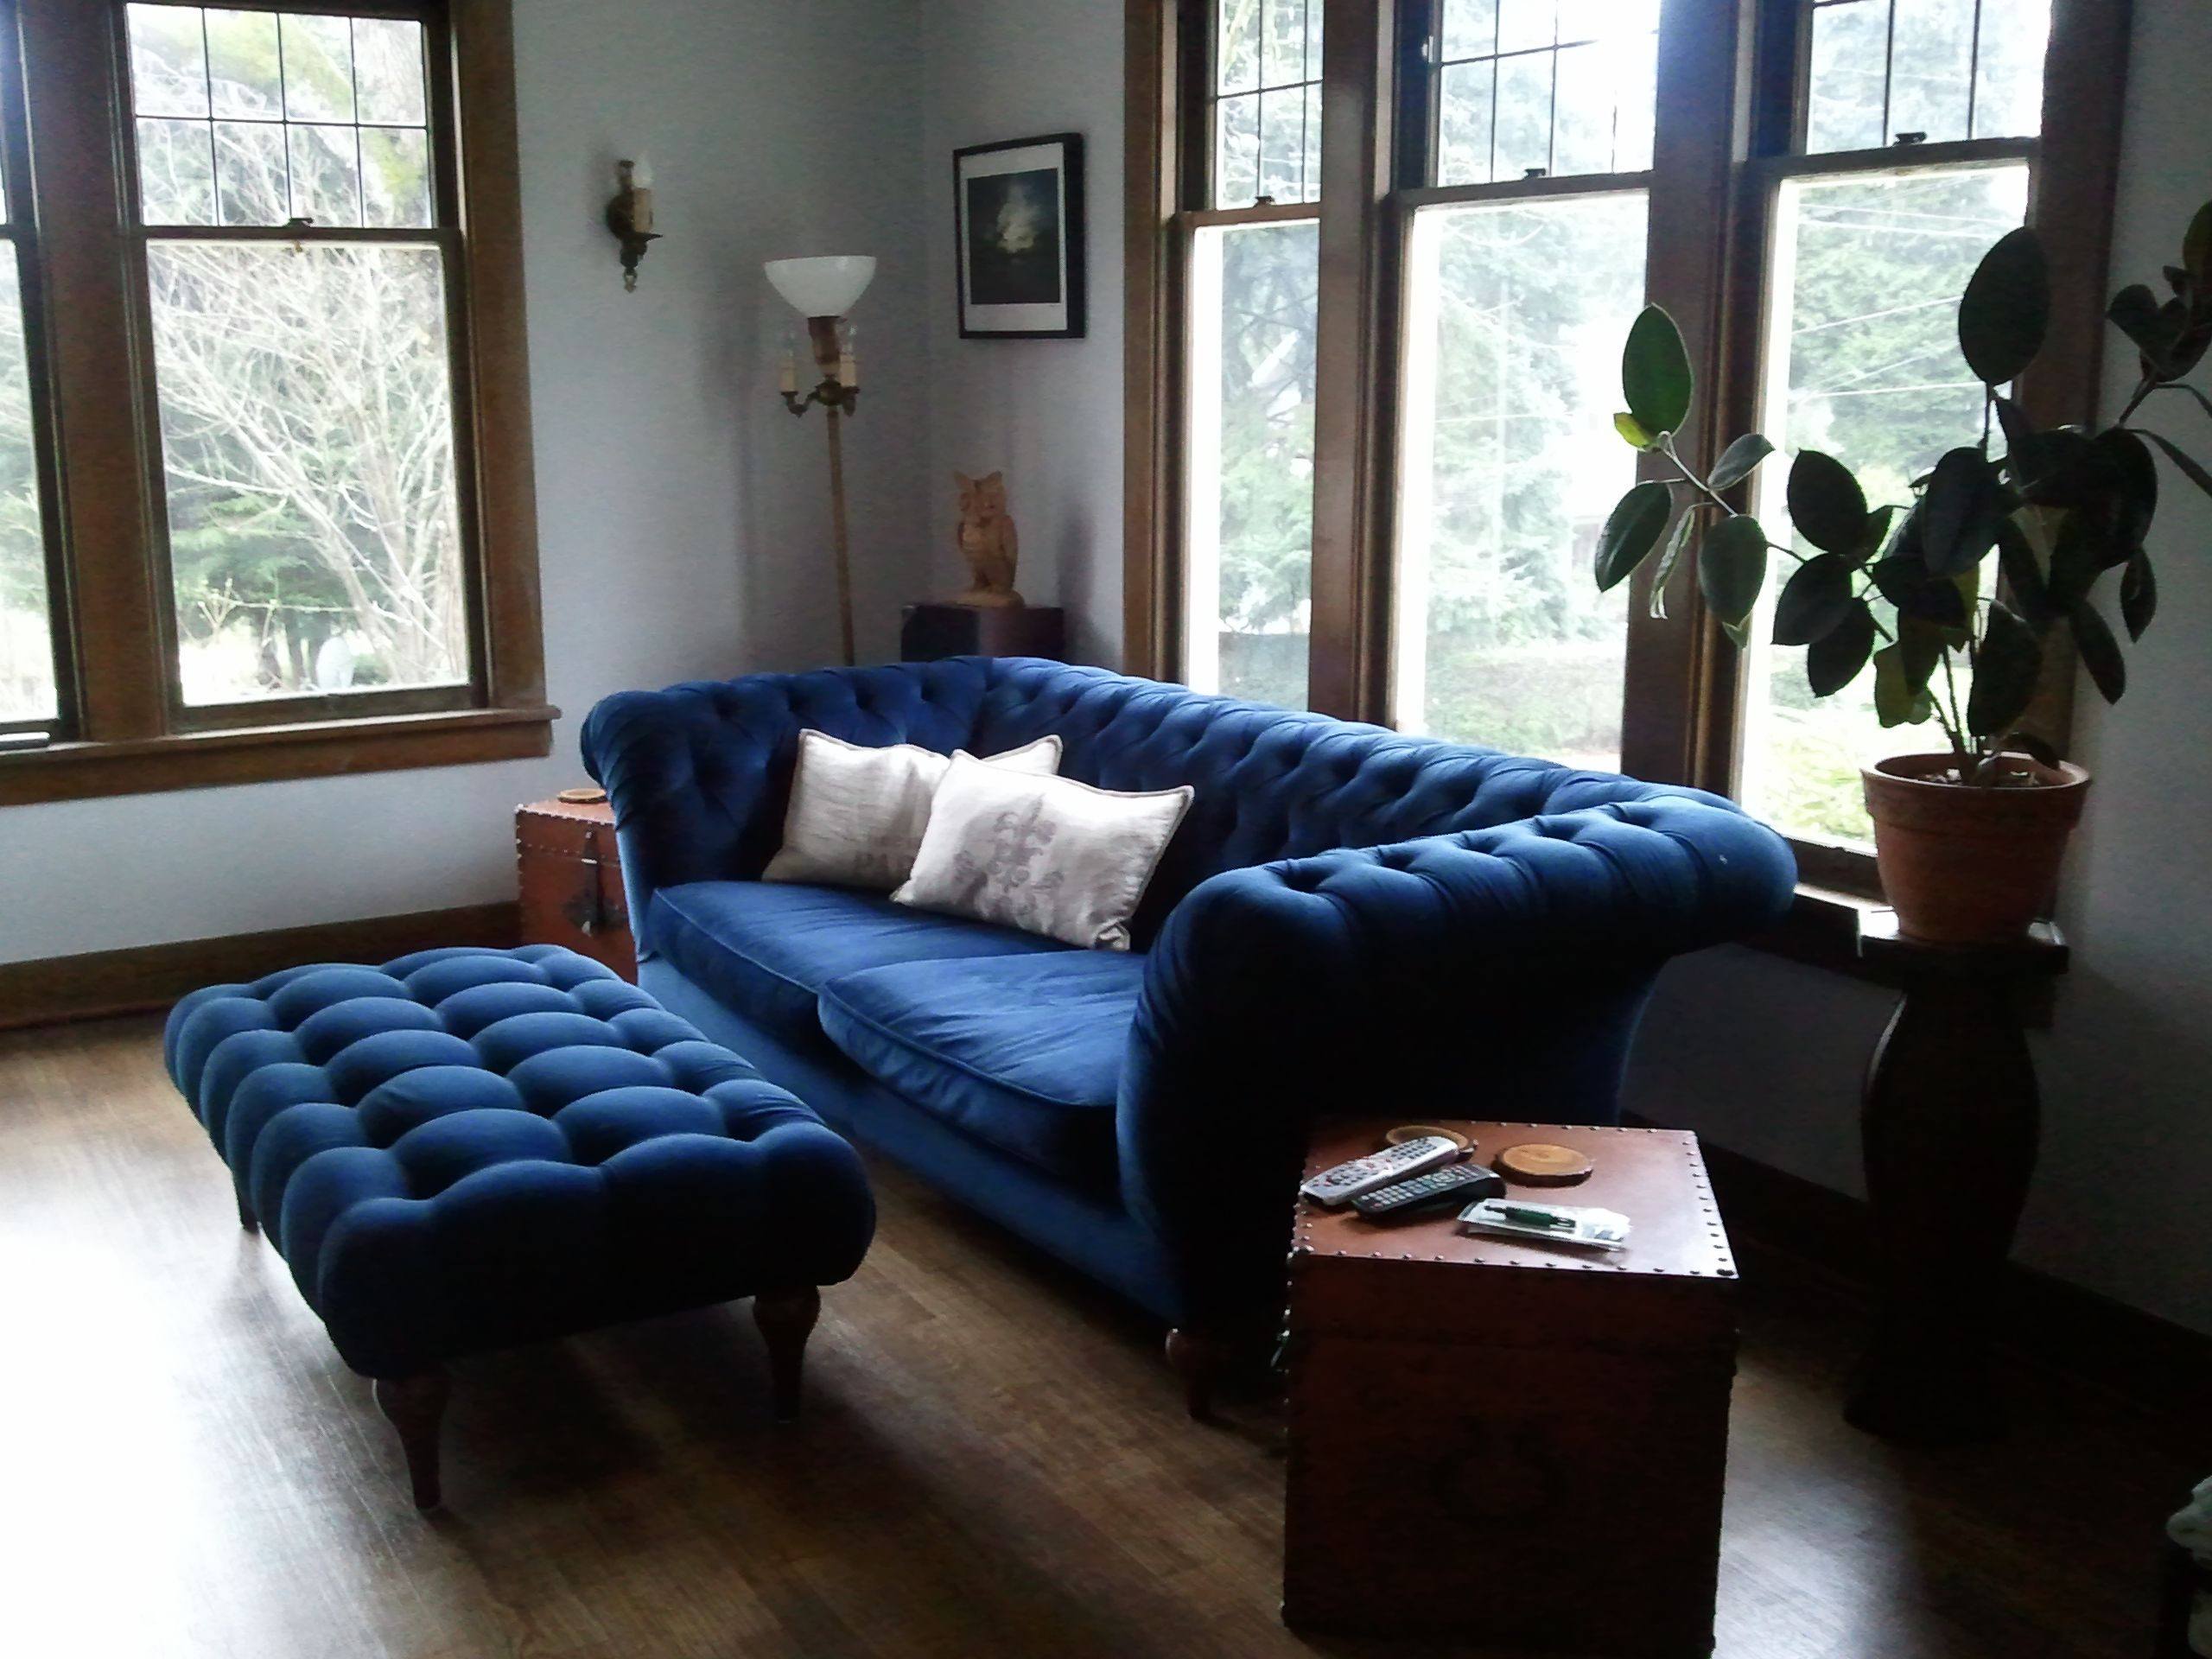 Awesome Sofa Bed Craigslist , Lovely Sofa Bed Craigslist 78 With